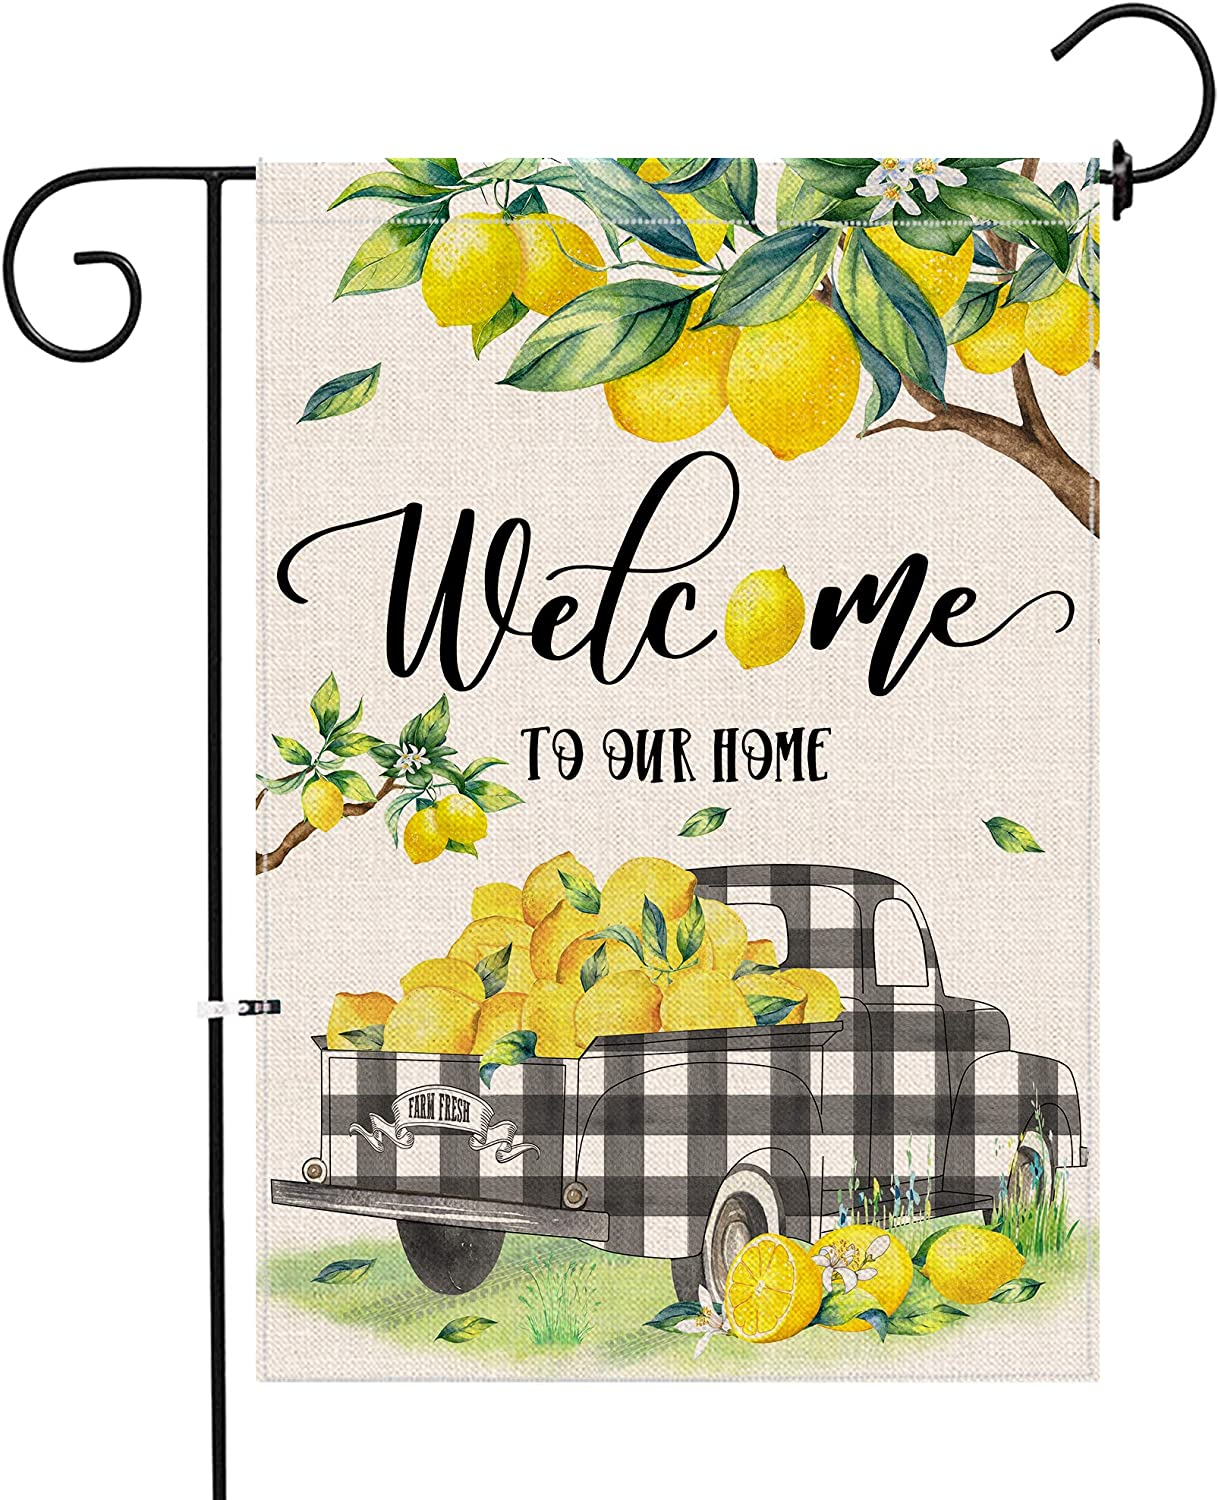 KamaLove Lemon Truck Summer Garden Flag Vertical Double Sided, Welcome Small Burlap Yard Flag 12×18,Spring Summer Rustic Outdoor Lawn Decoration for Home